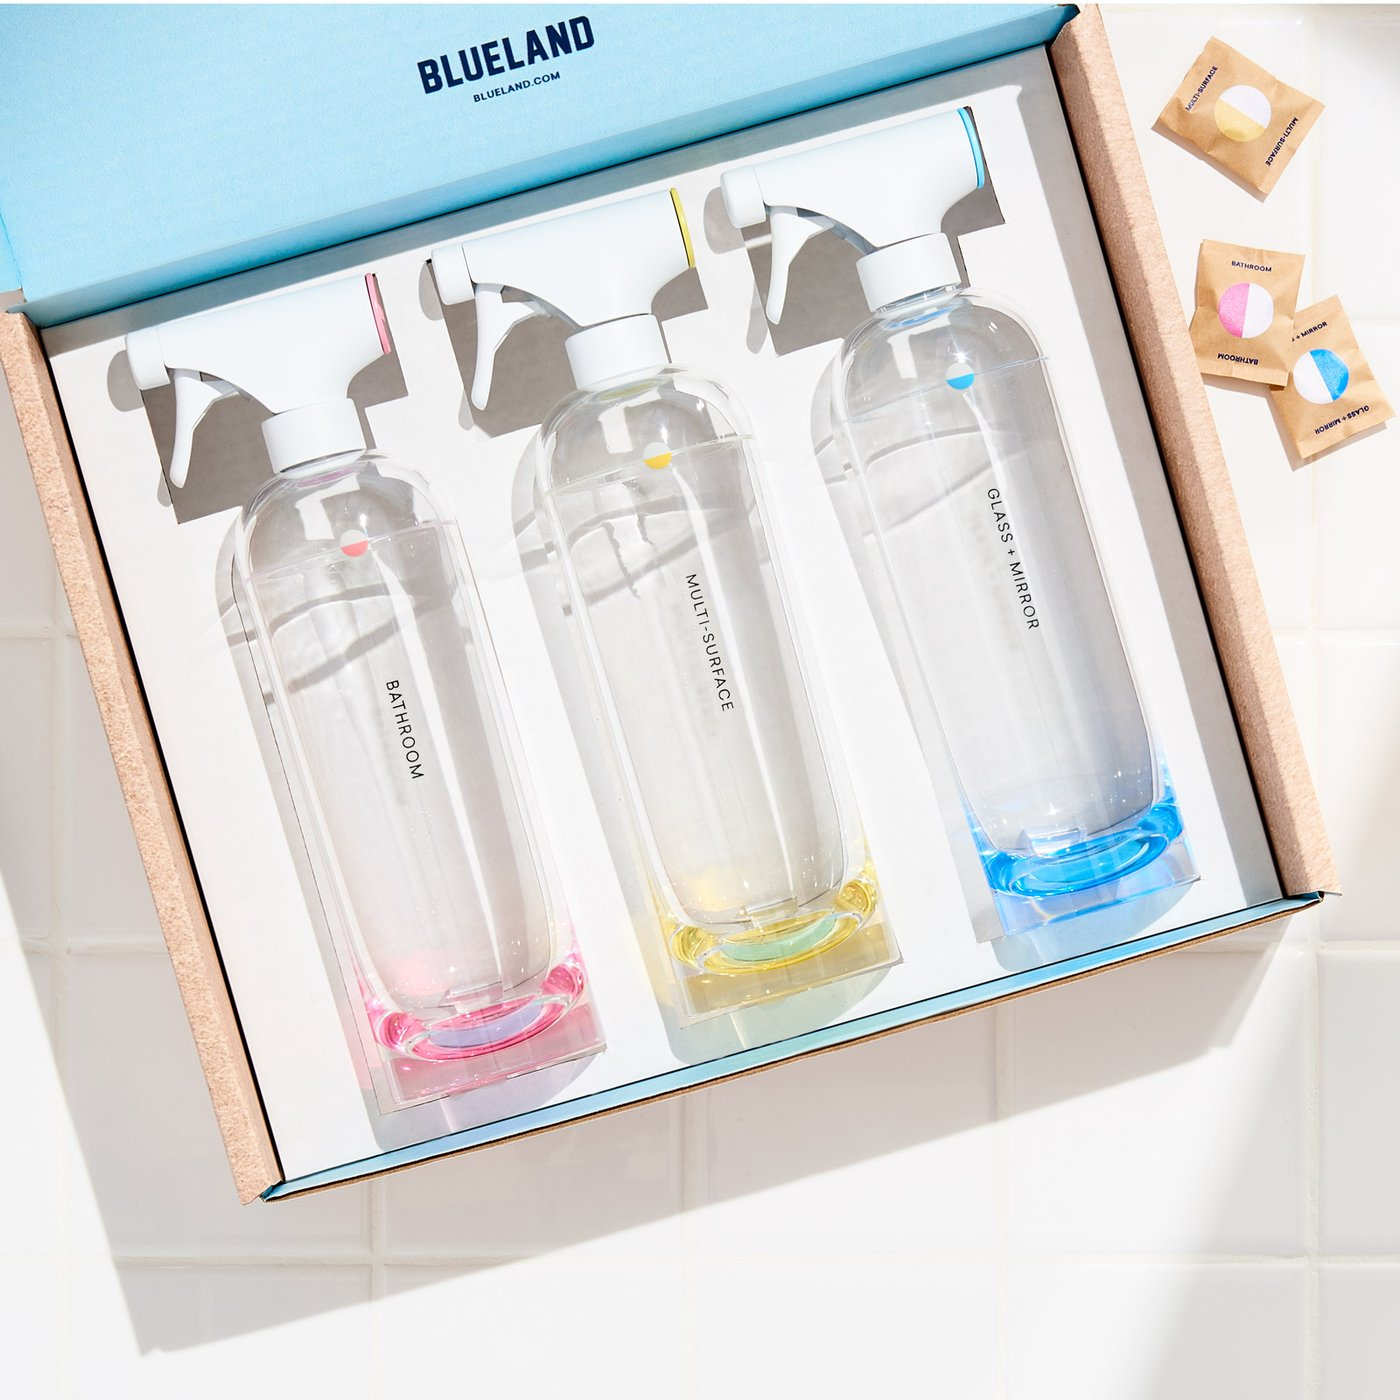 Blue Land Cleaning products box